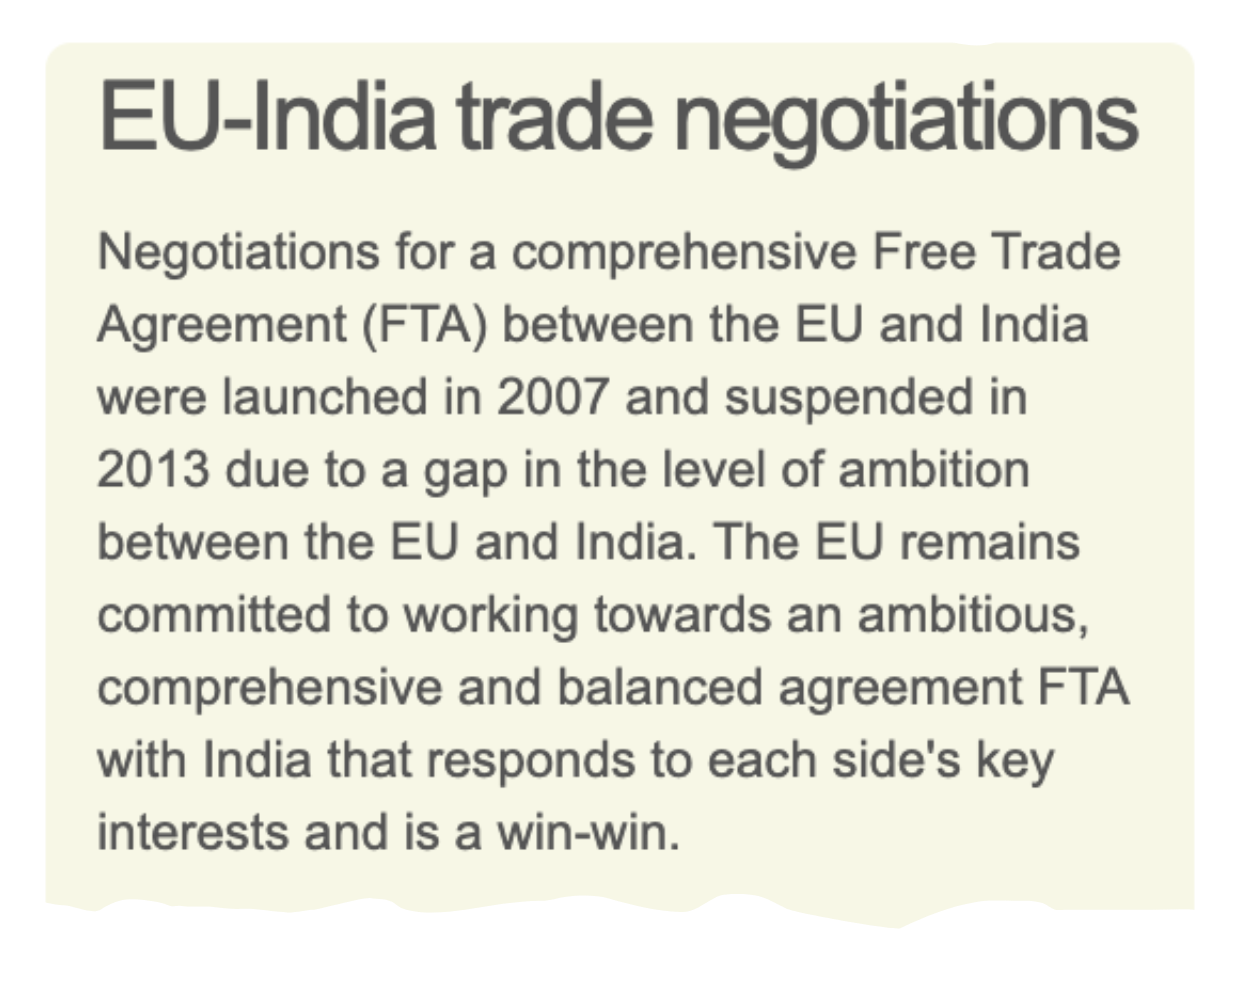 An explanation from the EU side of the EU-India trade relationship